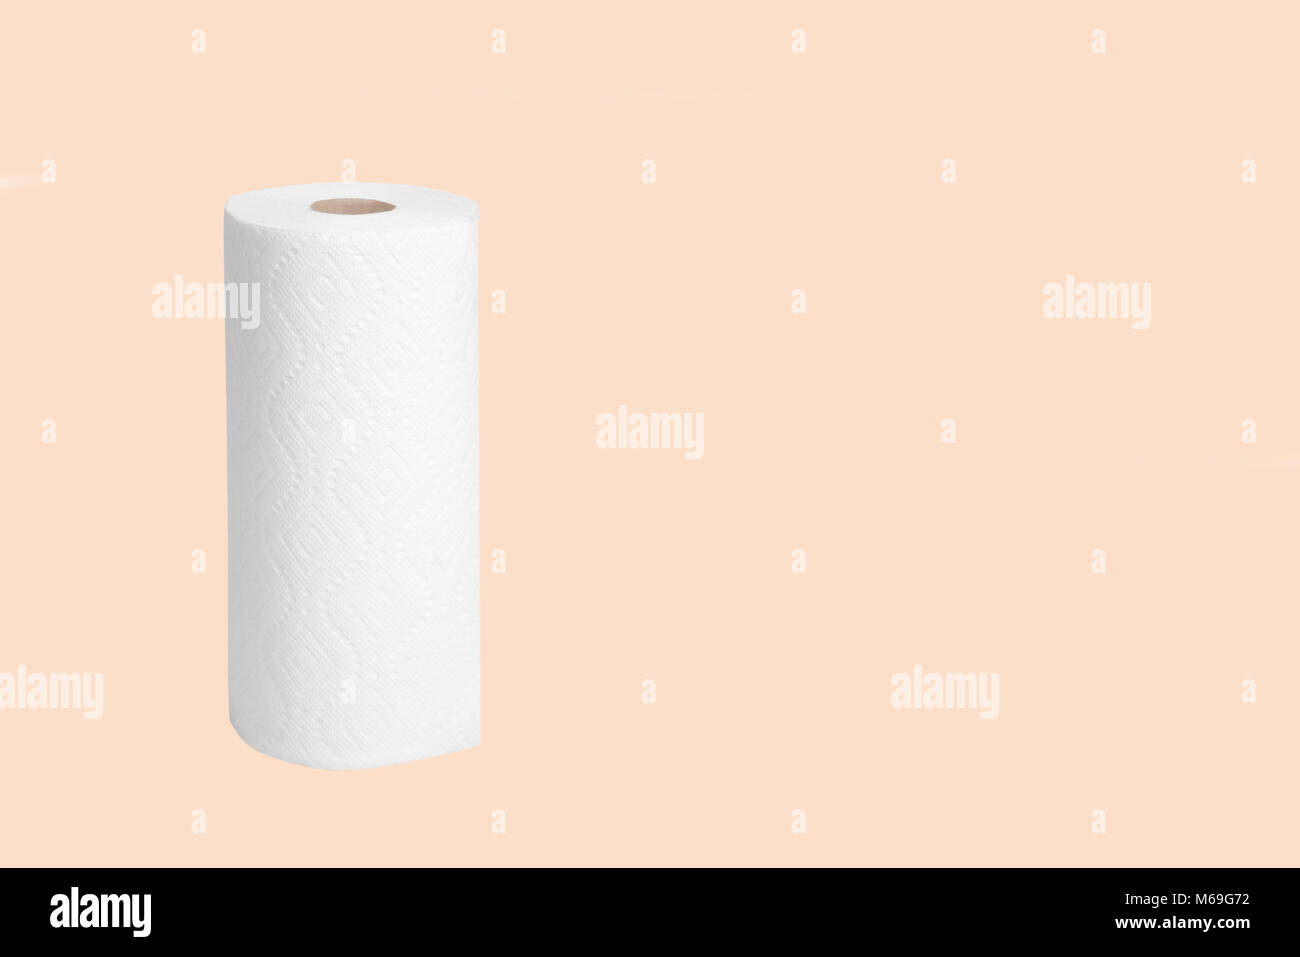 Roll of paper towel for housework on pastel background - Stock Image